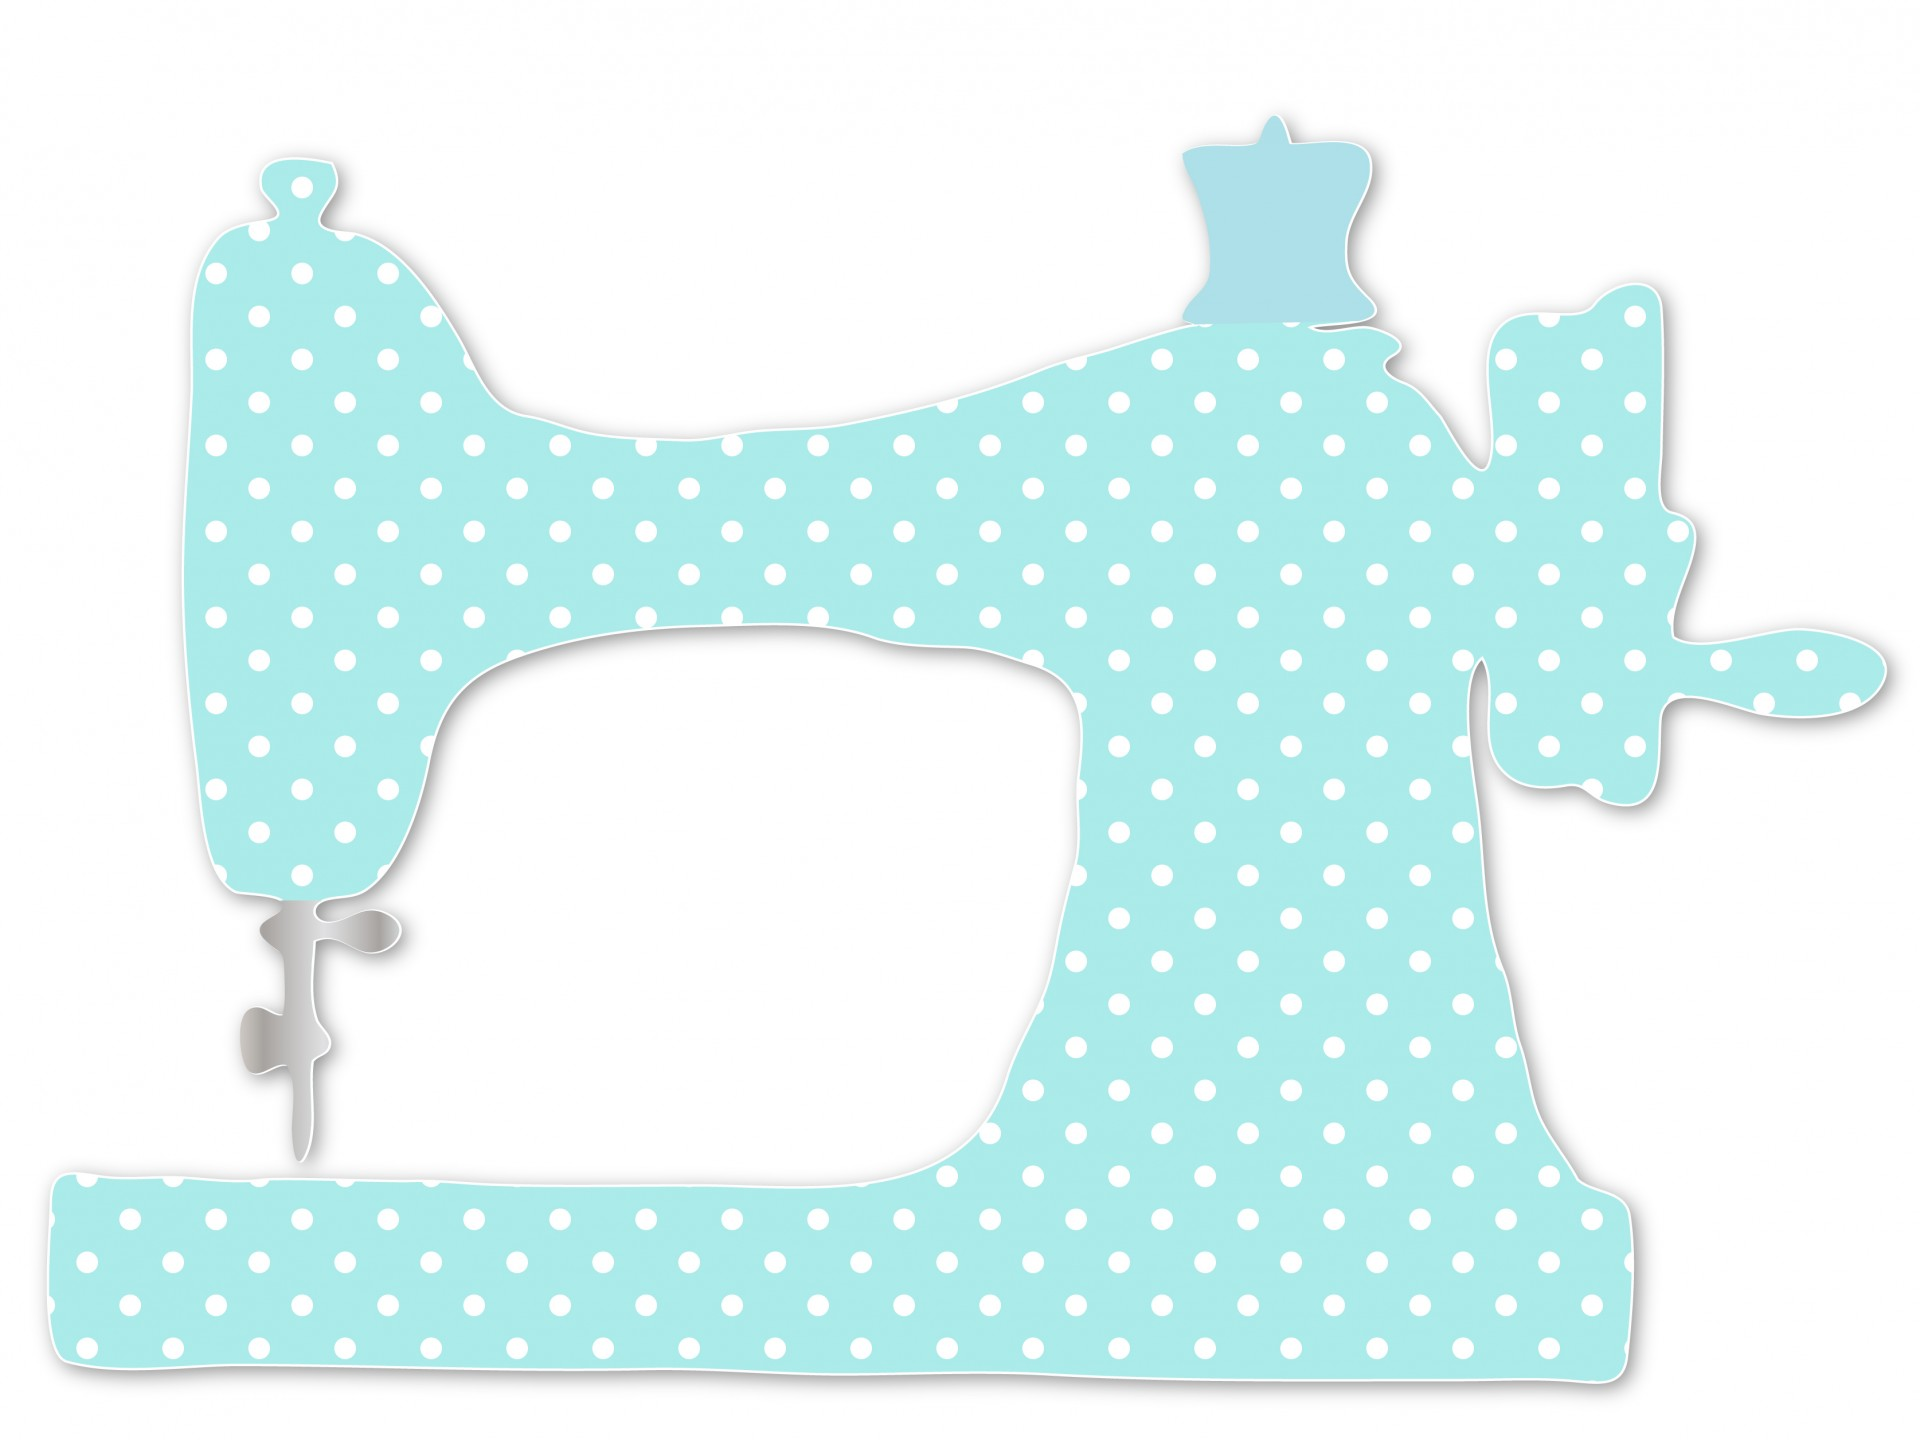 ... Vintage Sewing Machine Clipart ...-... Vintage Sewing Machine Clipart ...-19